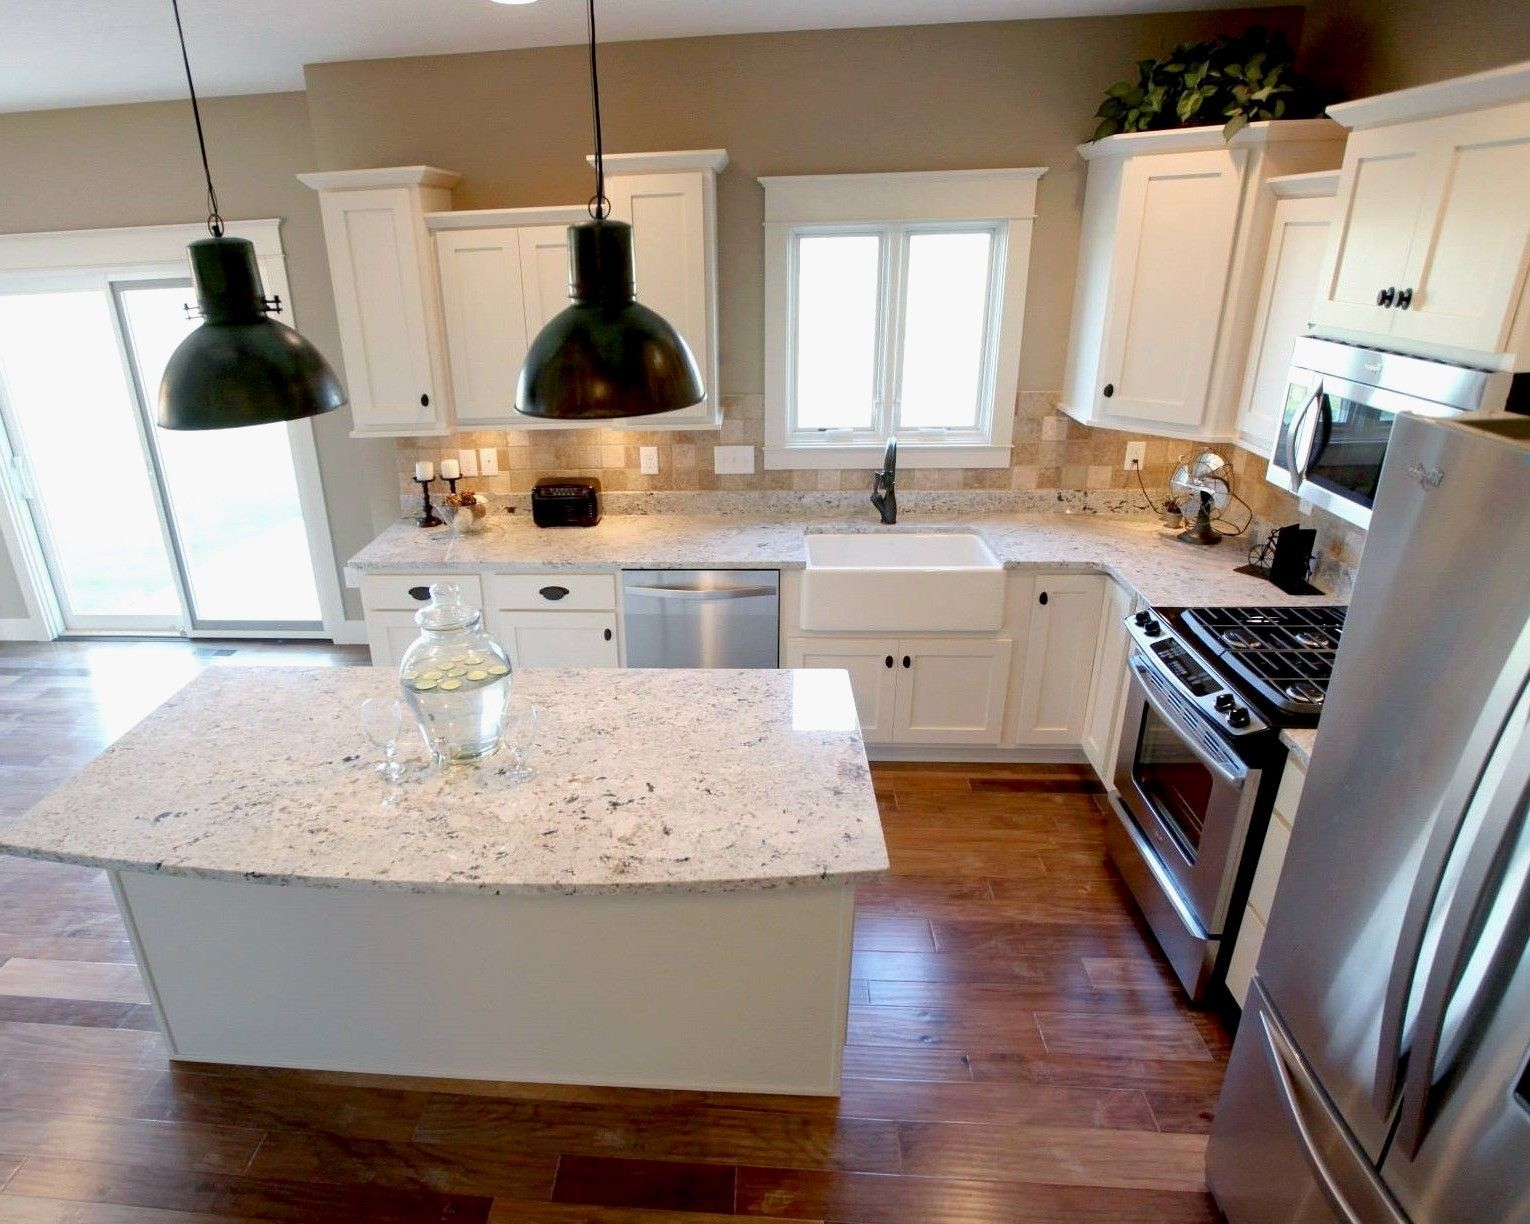 27 Fascinating Kitchen Layout Ideas A Guide For Kitchen Designs Withisland Floorplans S Small Kitchen Layouts Kitchen Designs Layout Kitchen Remodel Small